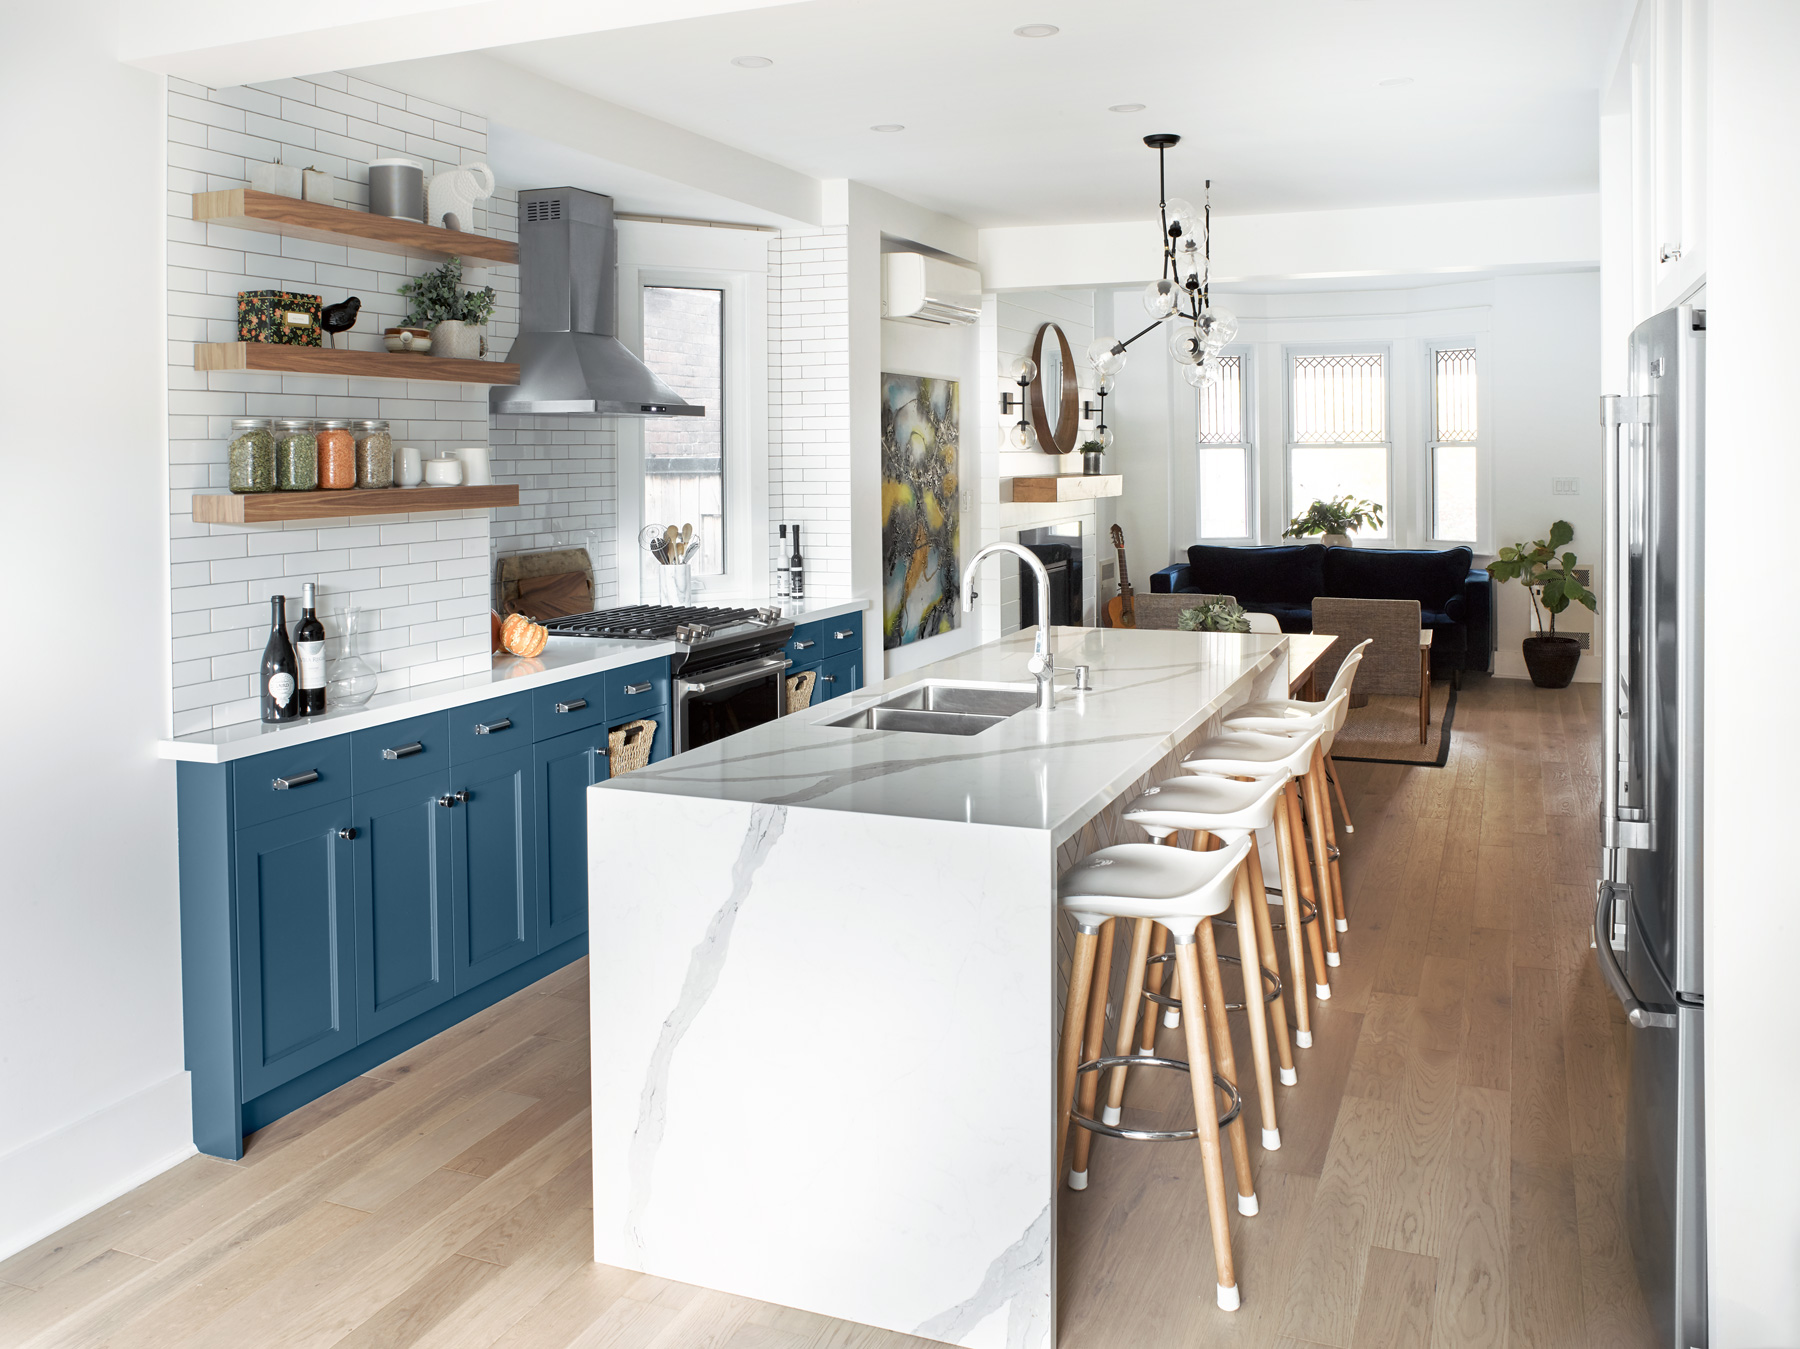 Transitional Kitchen with Blue Cabinetry